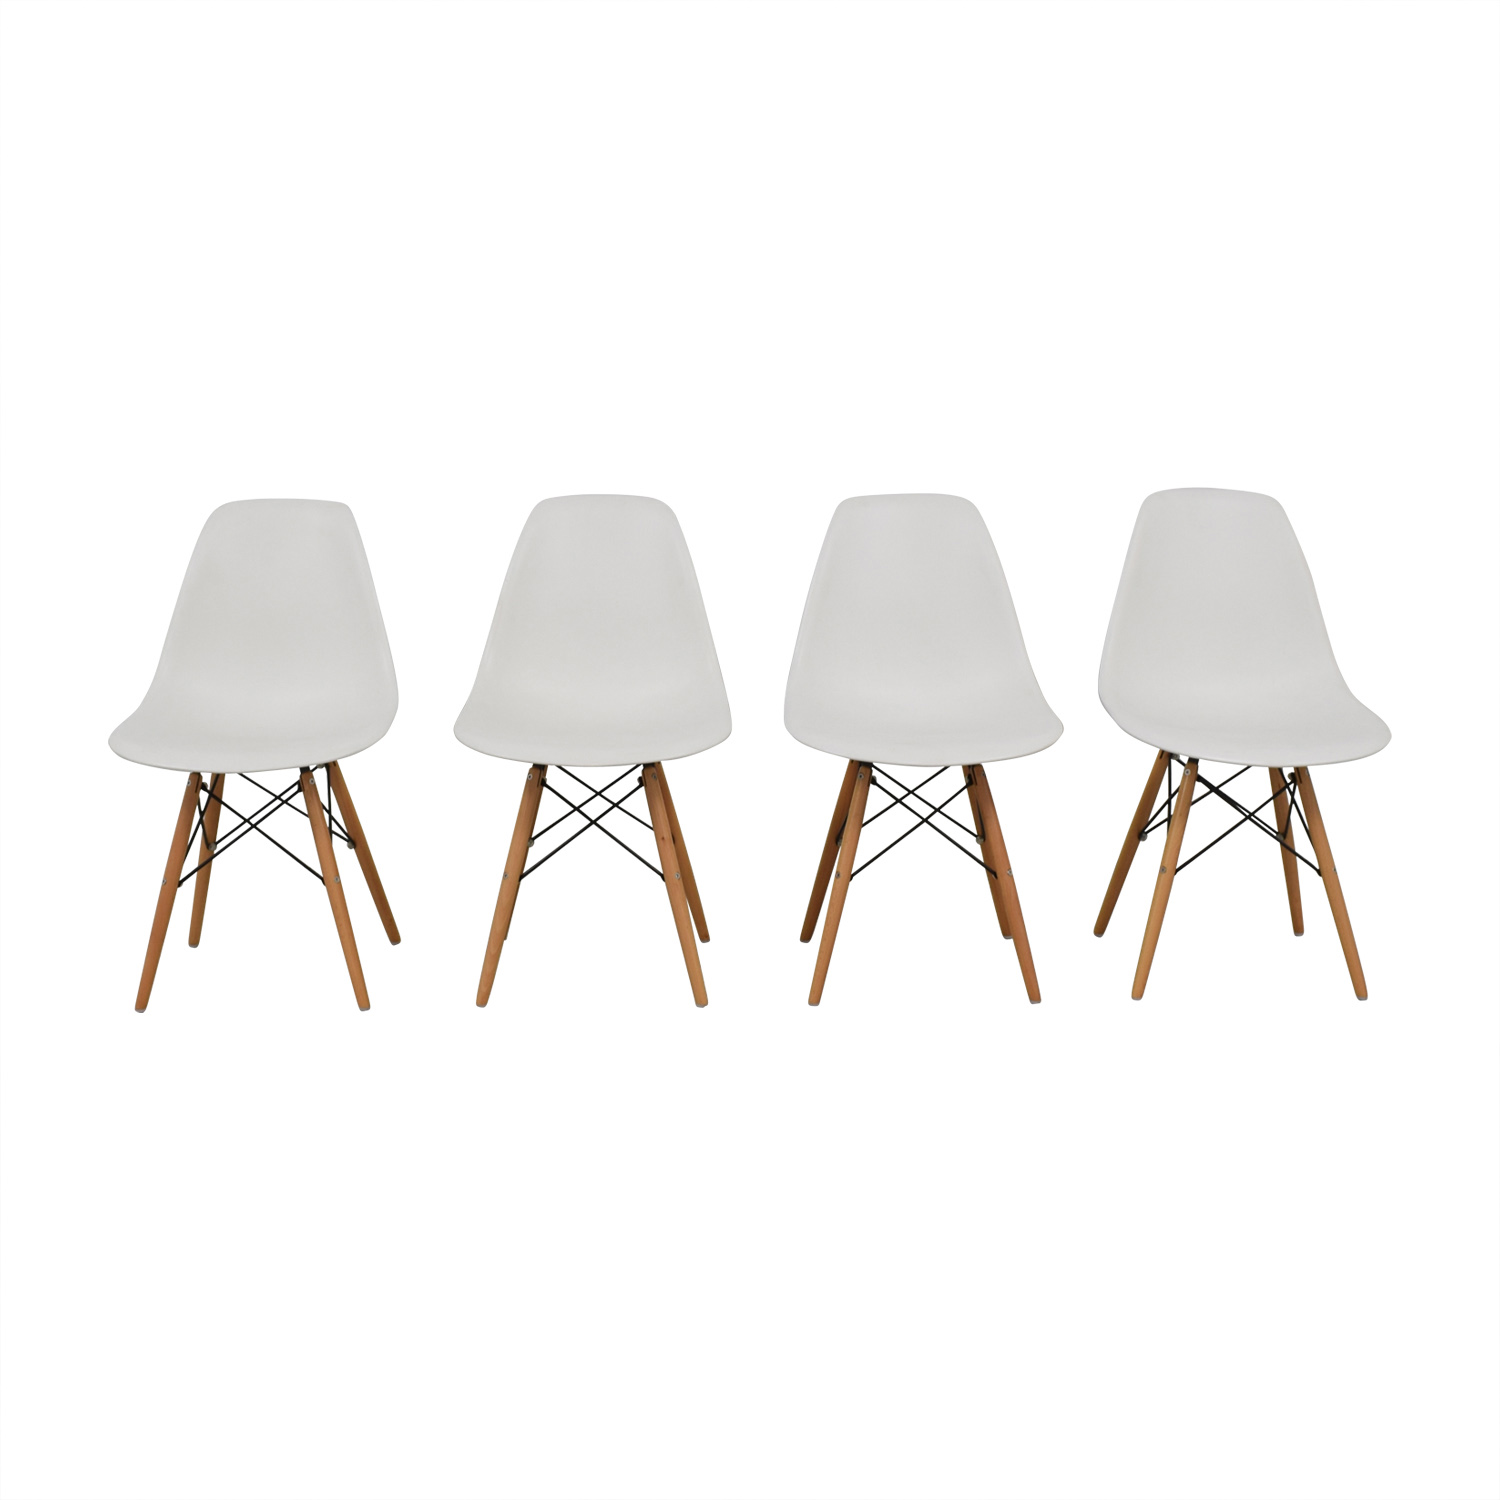 buy Rove Concept Eames Replica Dowel Leg White Molded Dining Chairs Rove Concept Dining Chairs